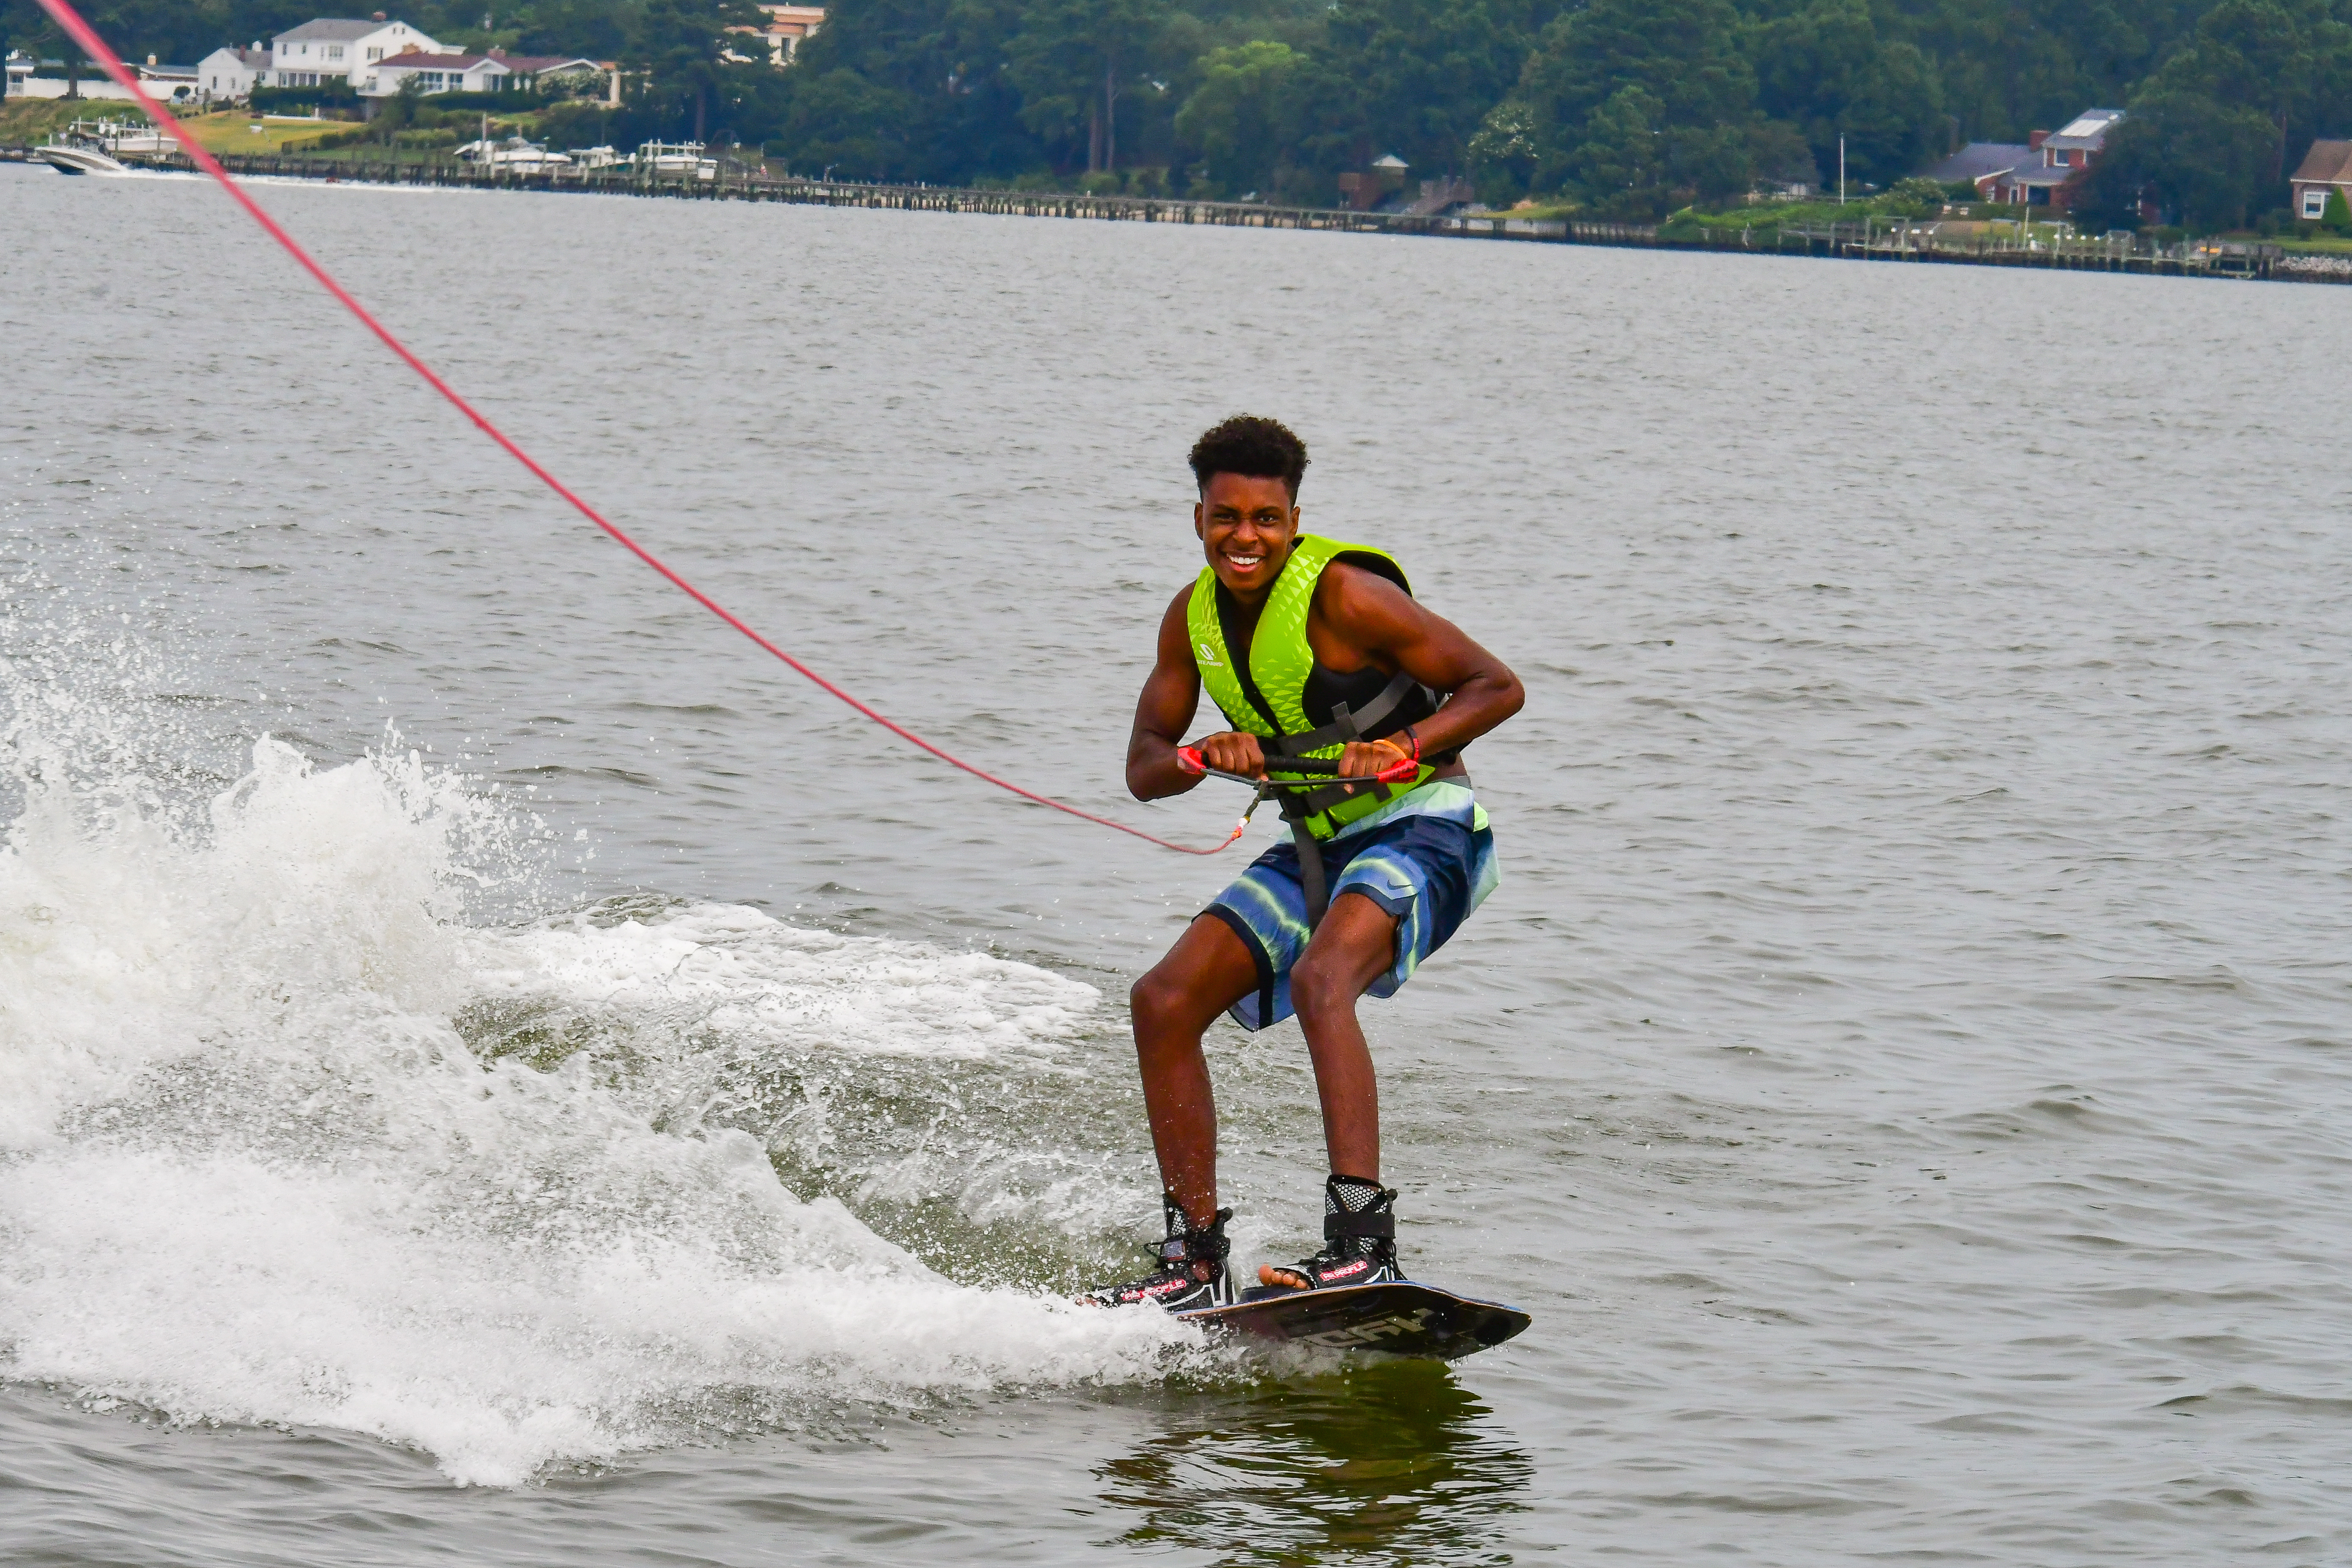 Odie's first time wakeboarding